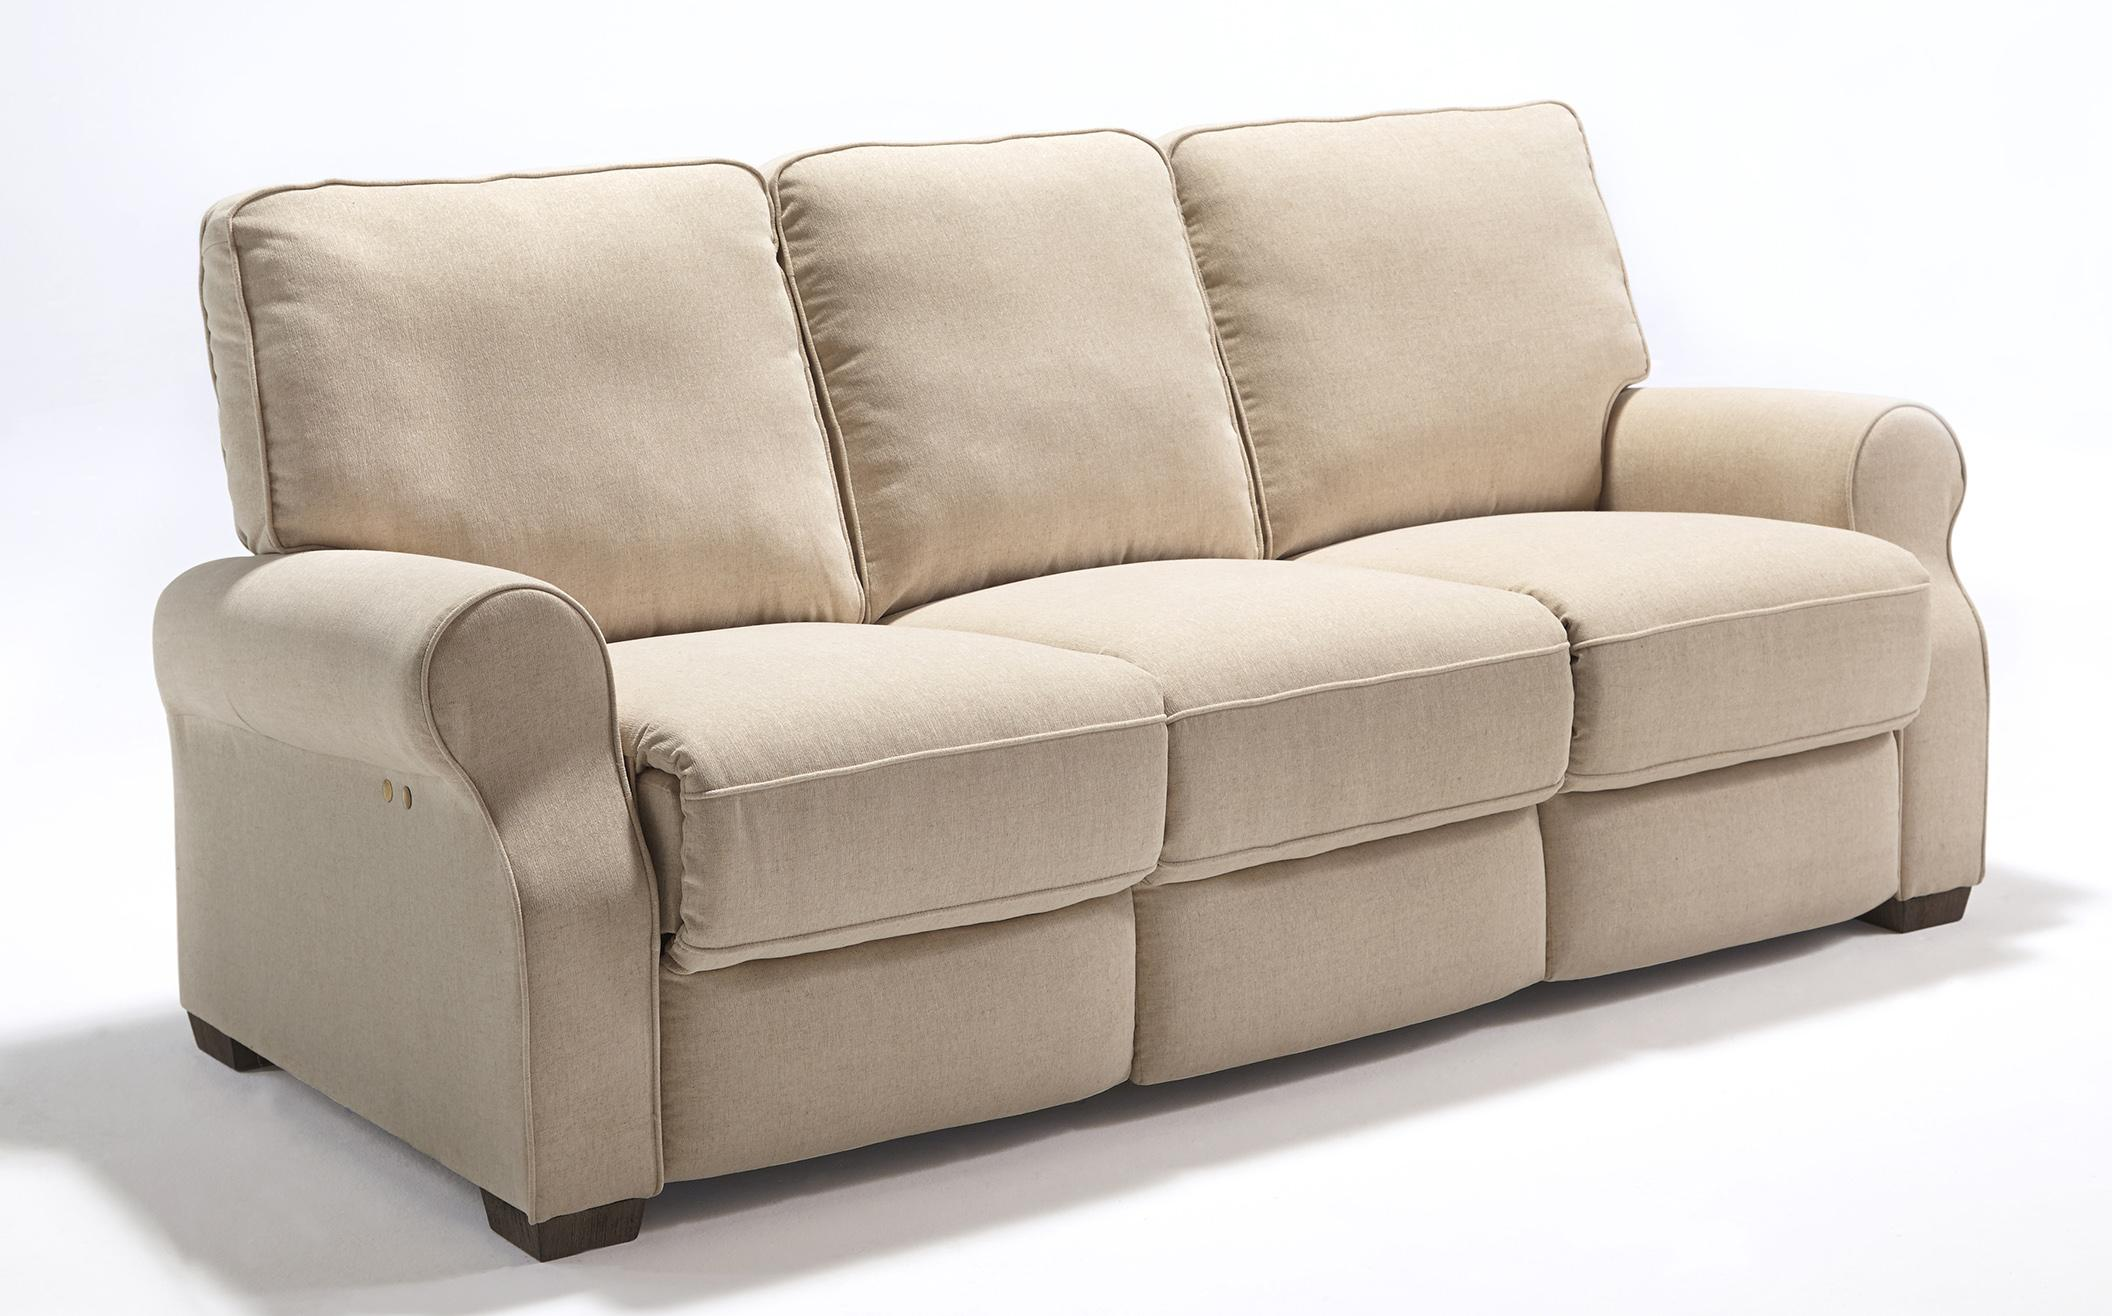 Best Home Furnishings Hattie Traditional Power Reclining Sofa with